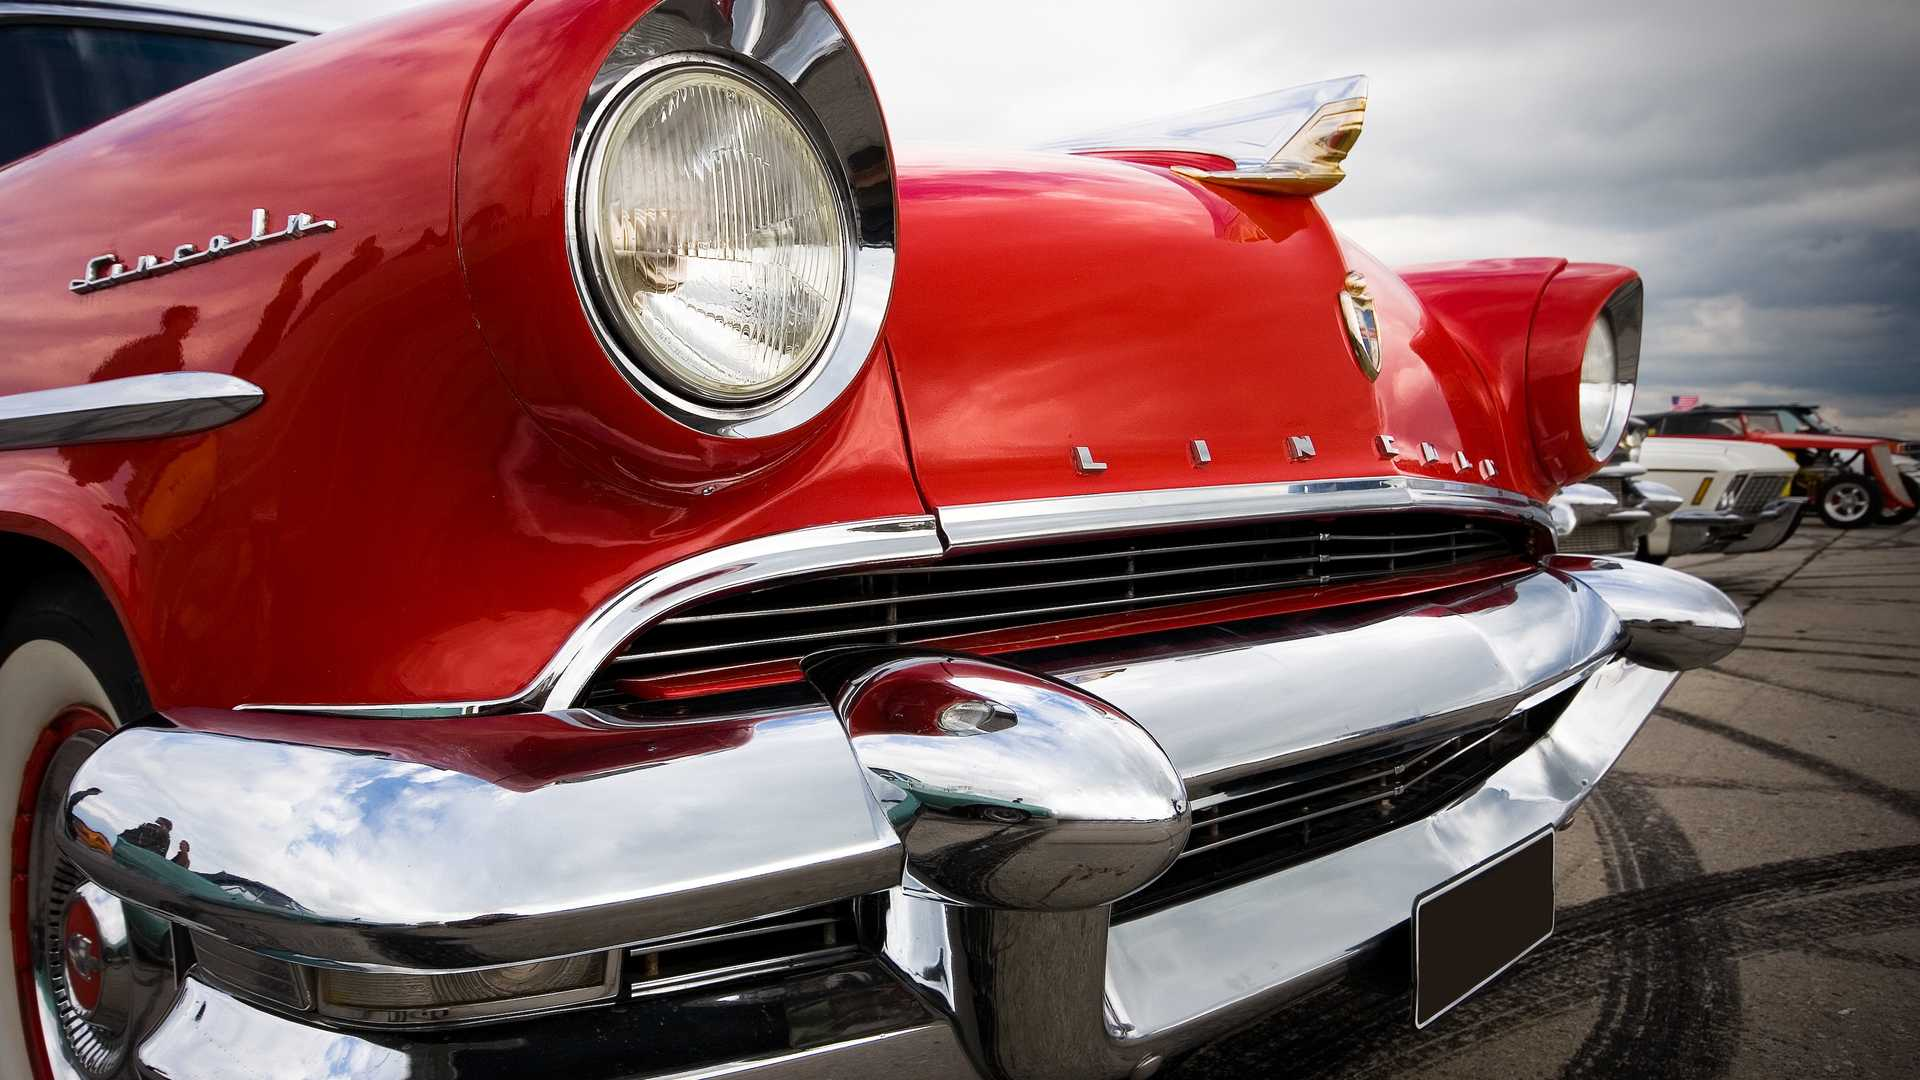 The Best Antique Car Insurance Providers 2020